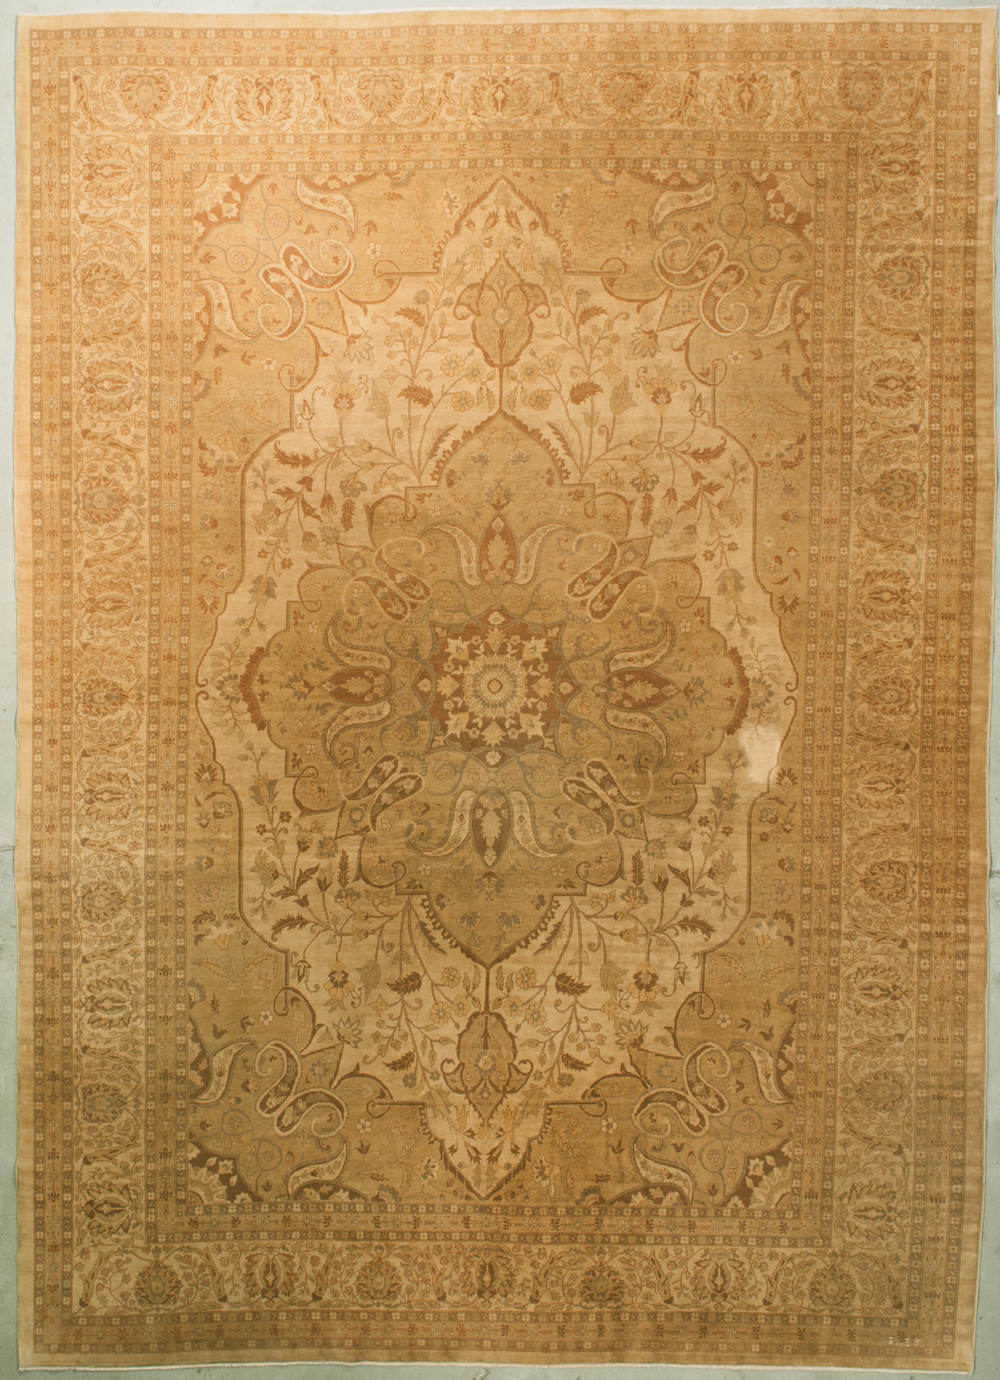 Finest Haj-Jalili Tabriz Rugs and more oriental carpet 35502-